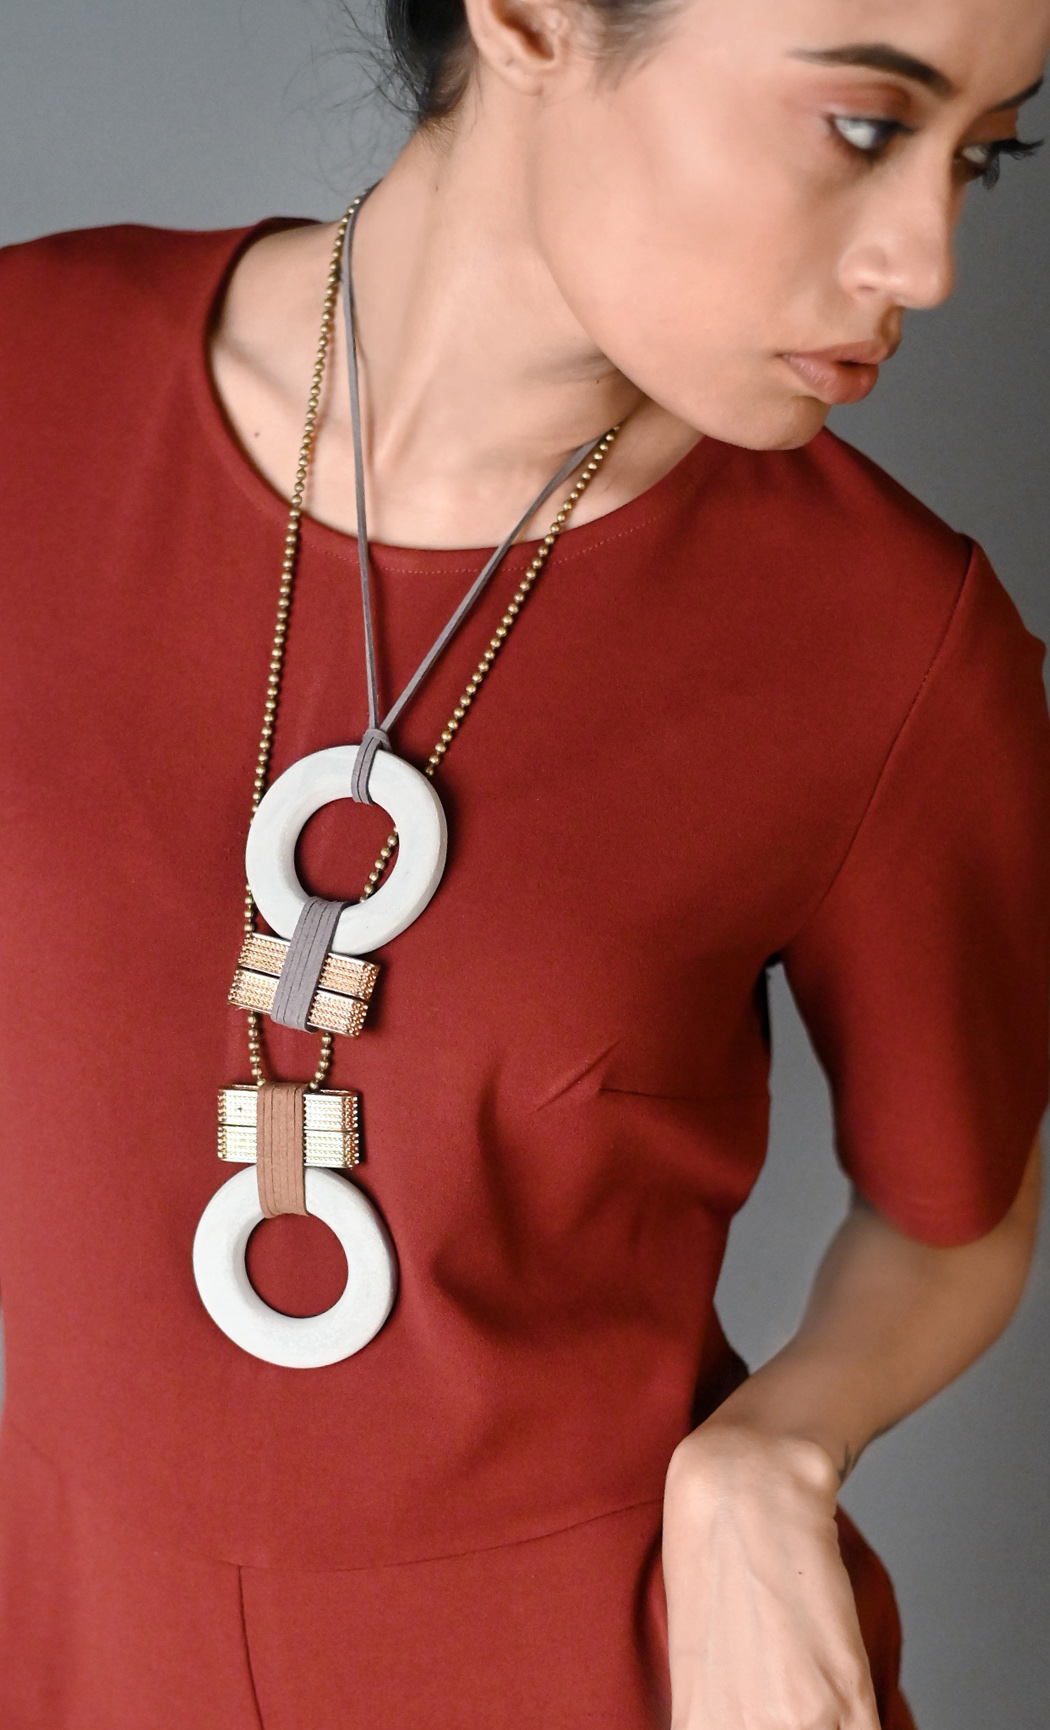 Grey Torus Long Statement Necklace - Buy Online